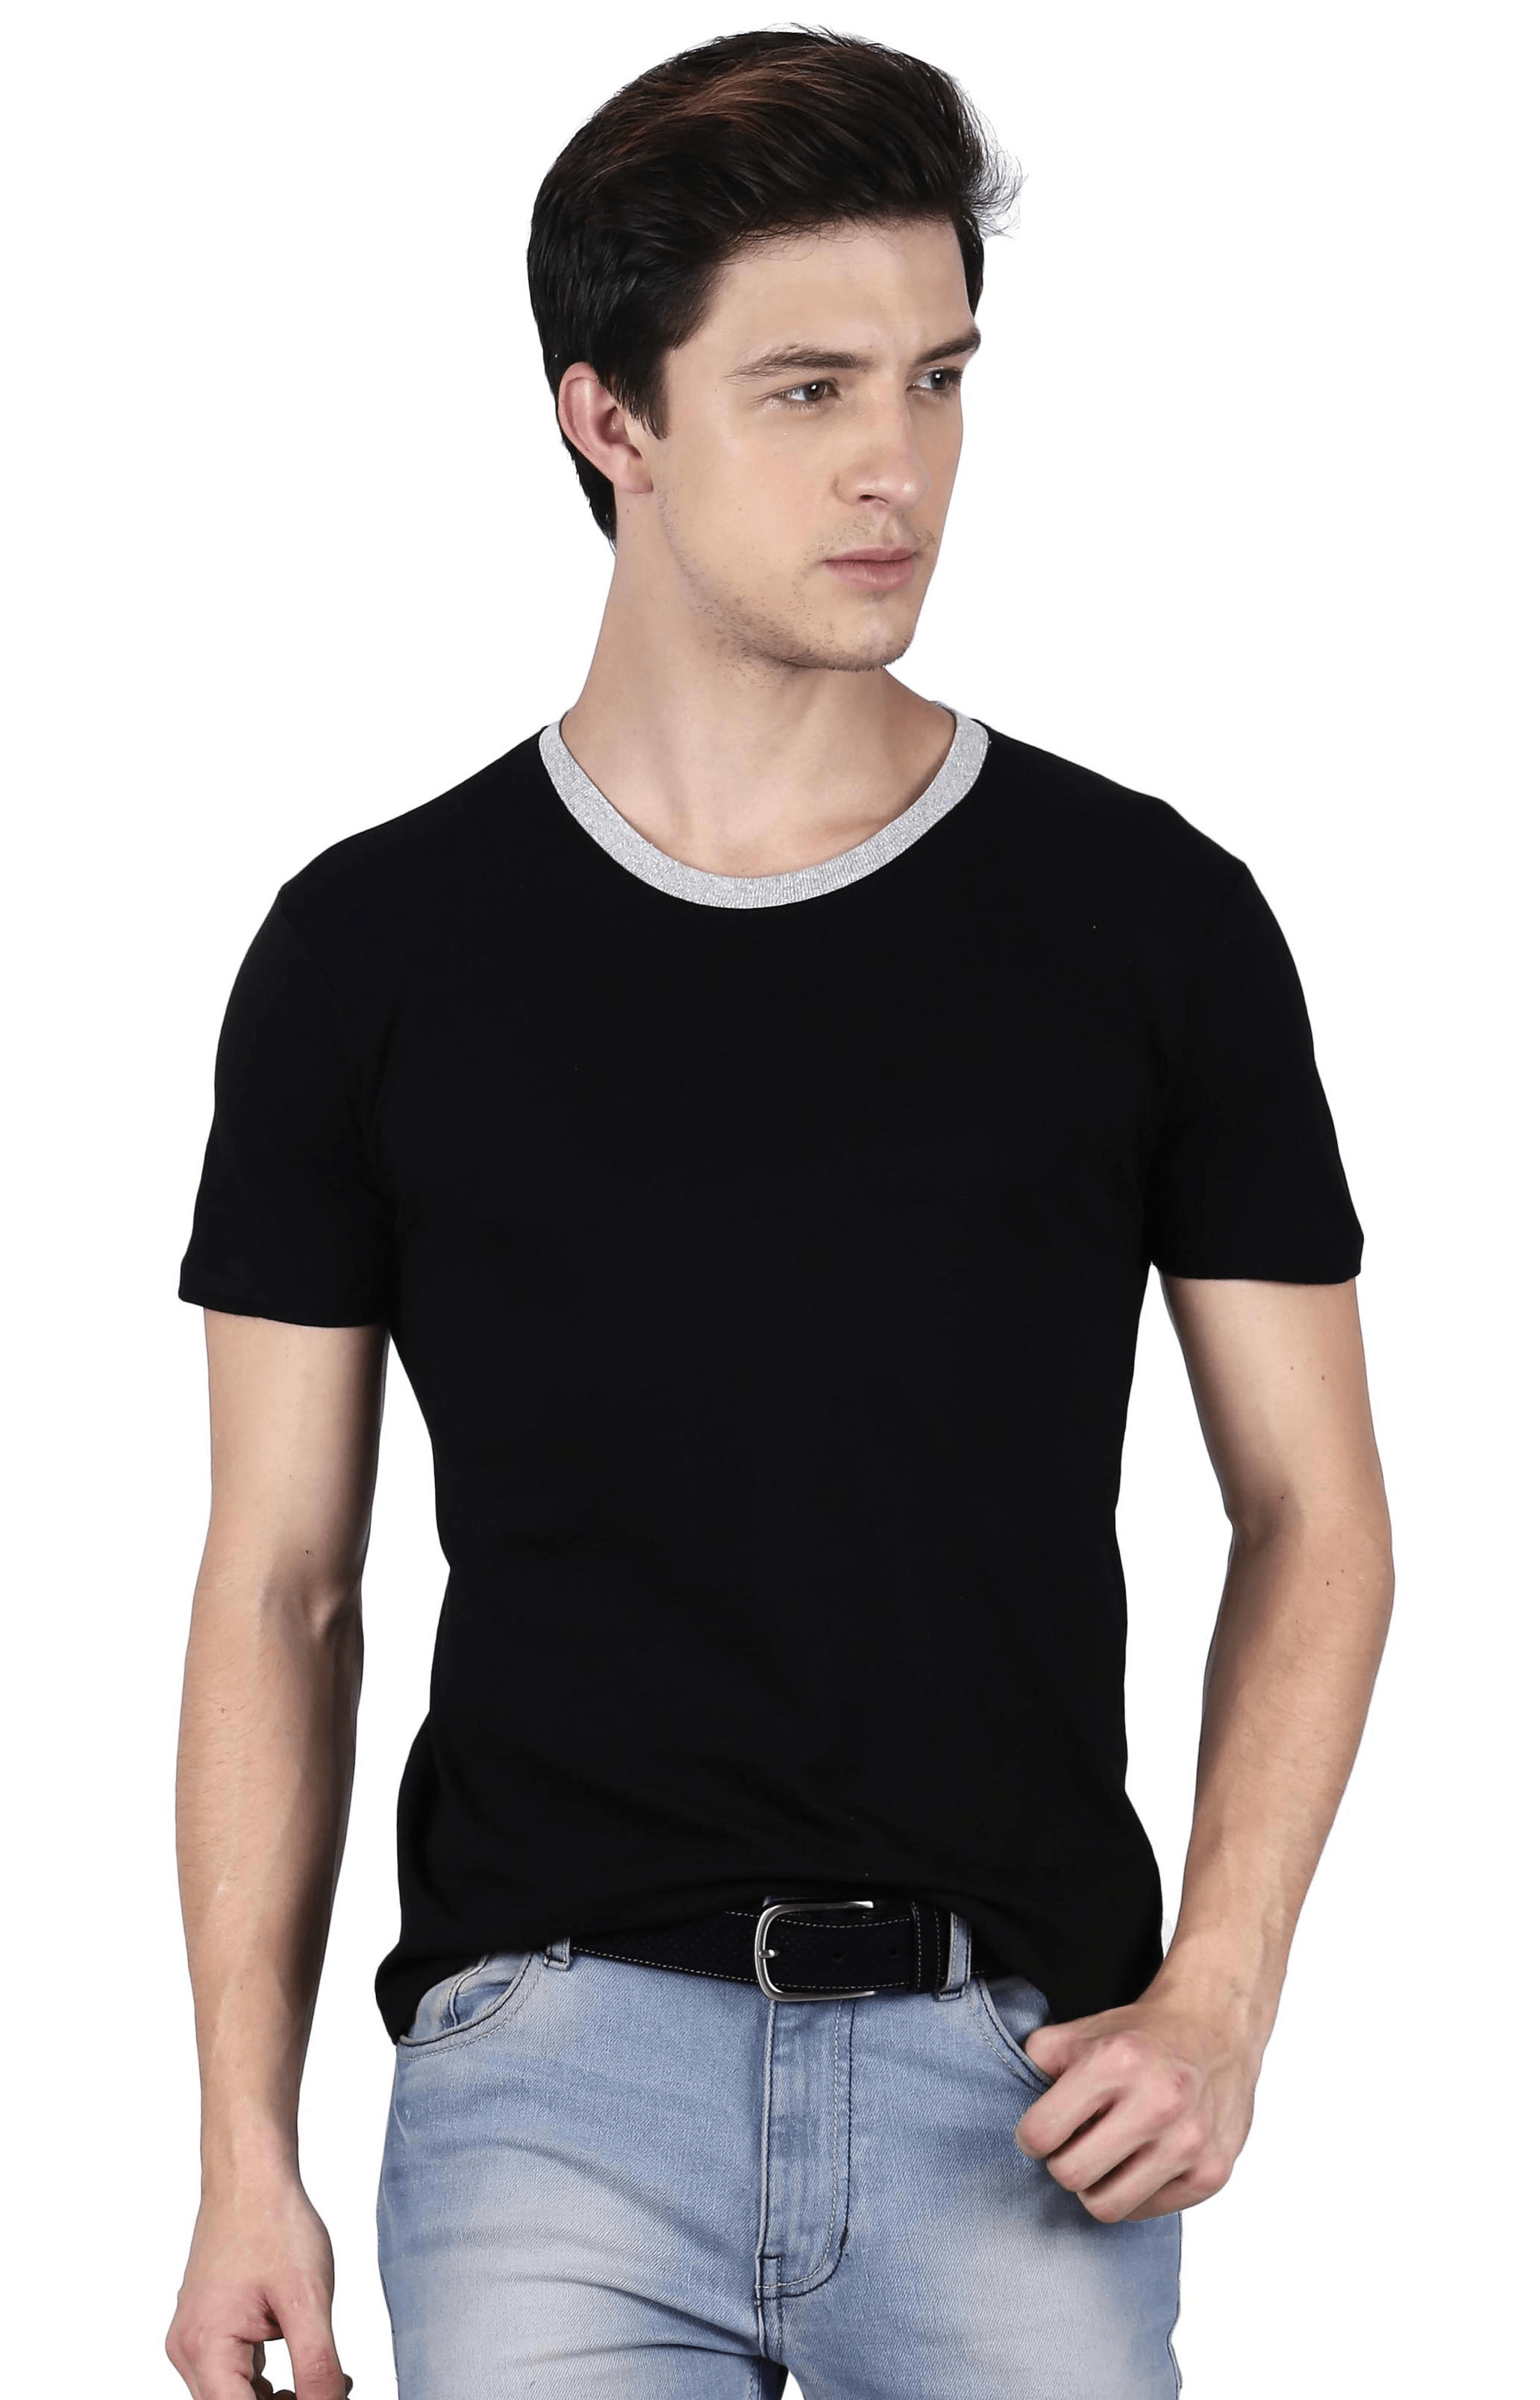 621474bd7a1 Fanideaz Round Neck With White Rip Cotton Plain T Shirt for Men ...